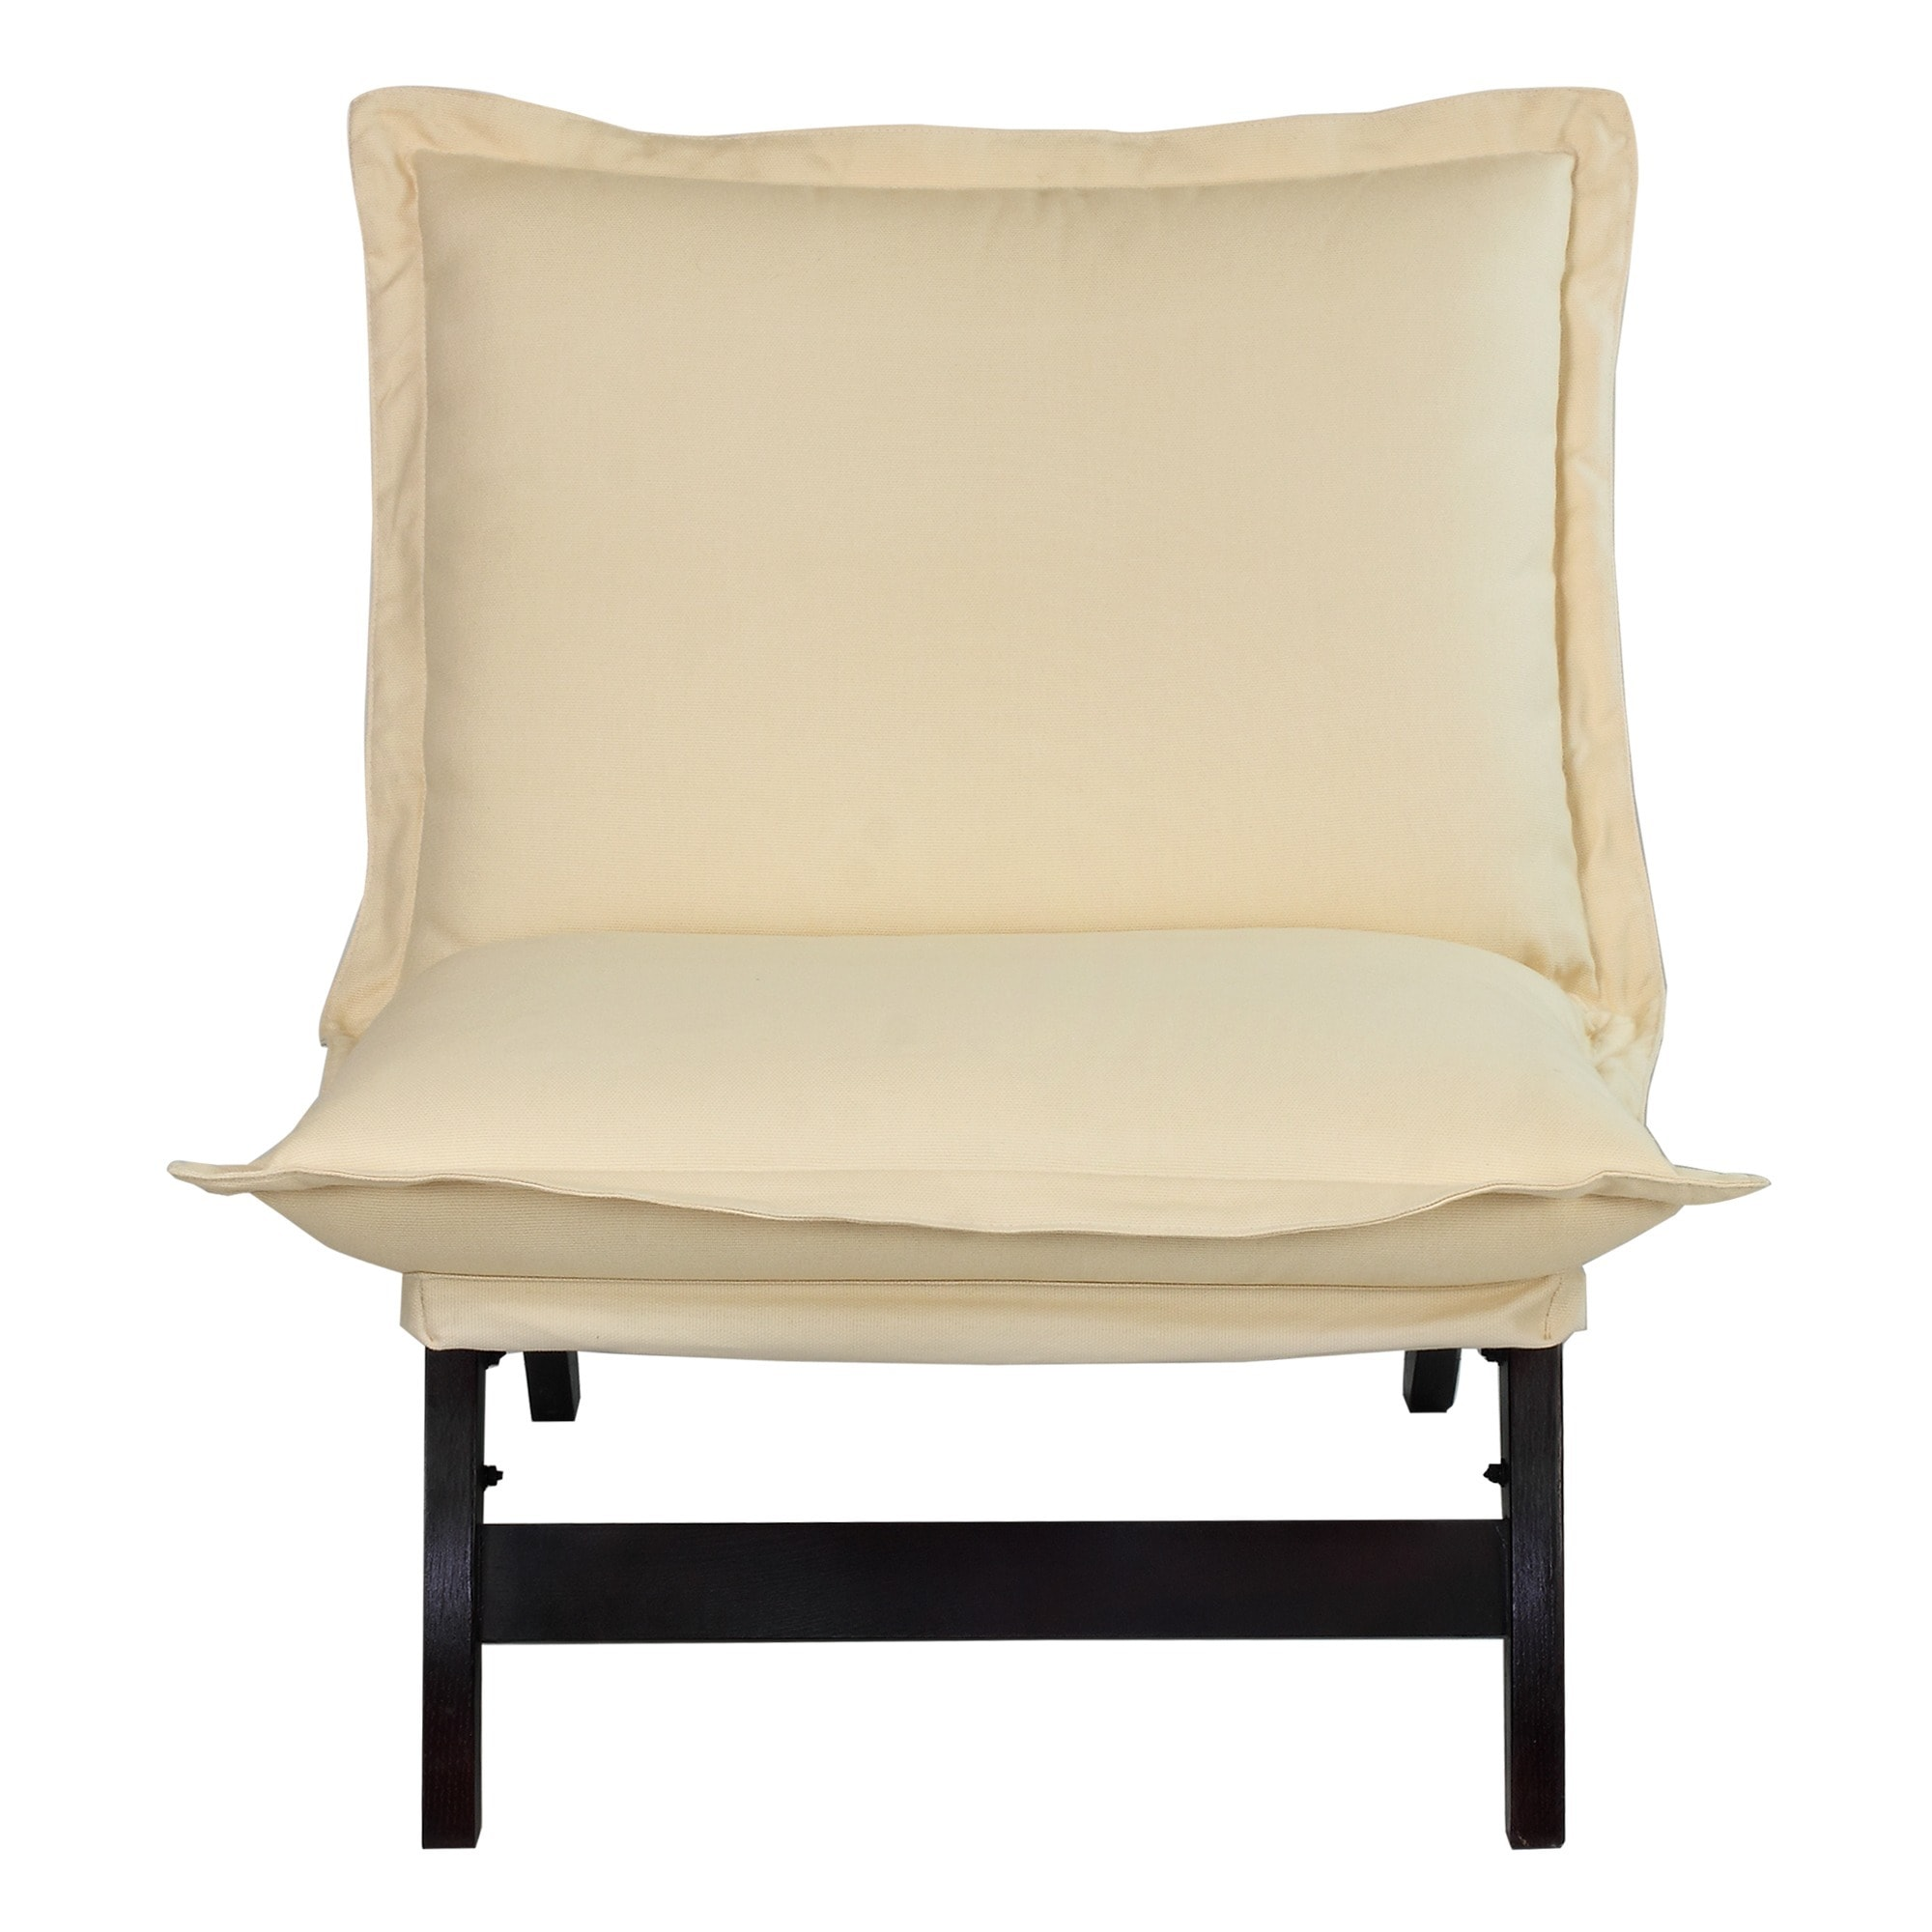 Casual Folding Lounger Chair Free Shipping Today Overstock